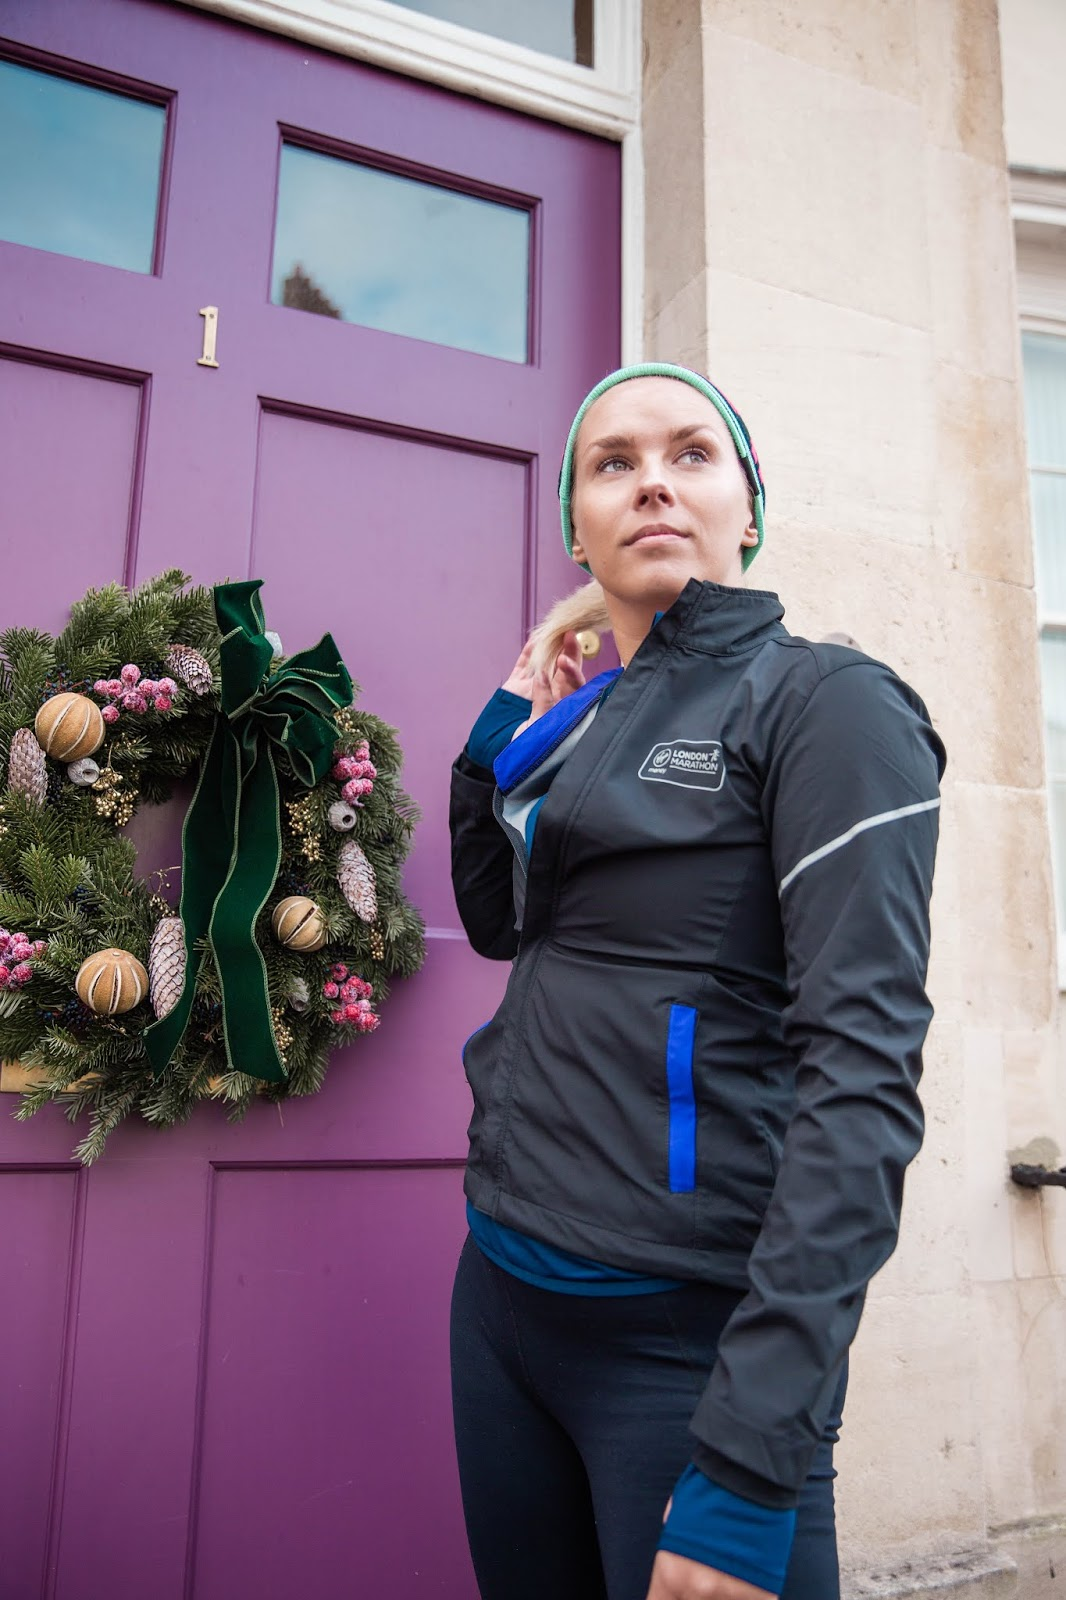 Rachel Emily in running gear stood near a festive door wreath looking away from the camera - Rachel Emily Blog